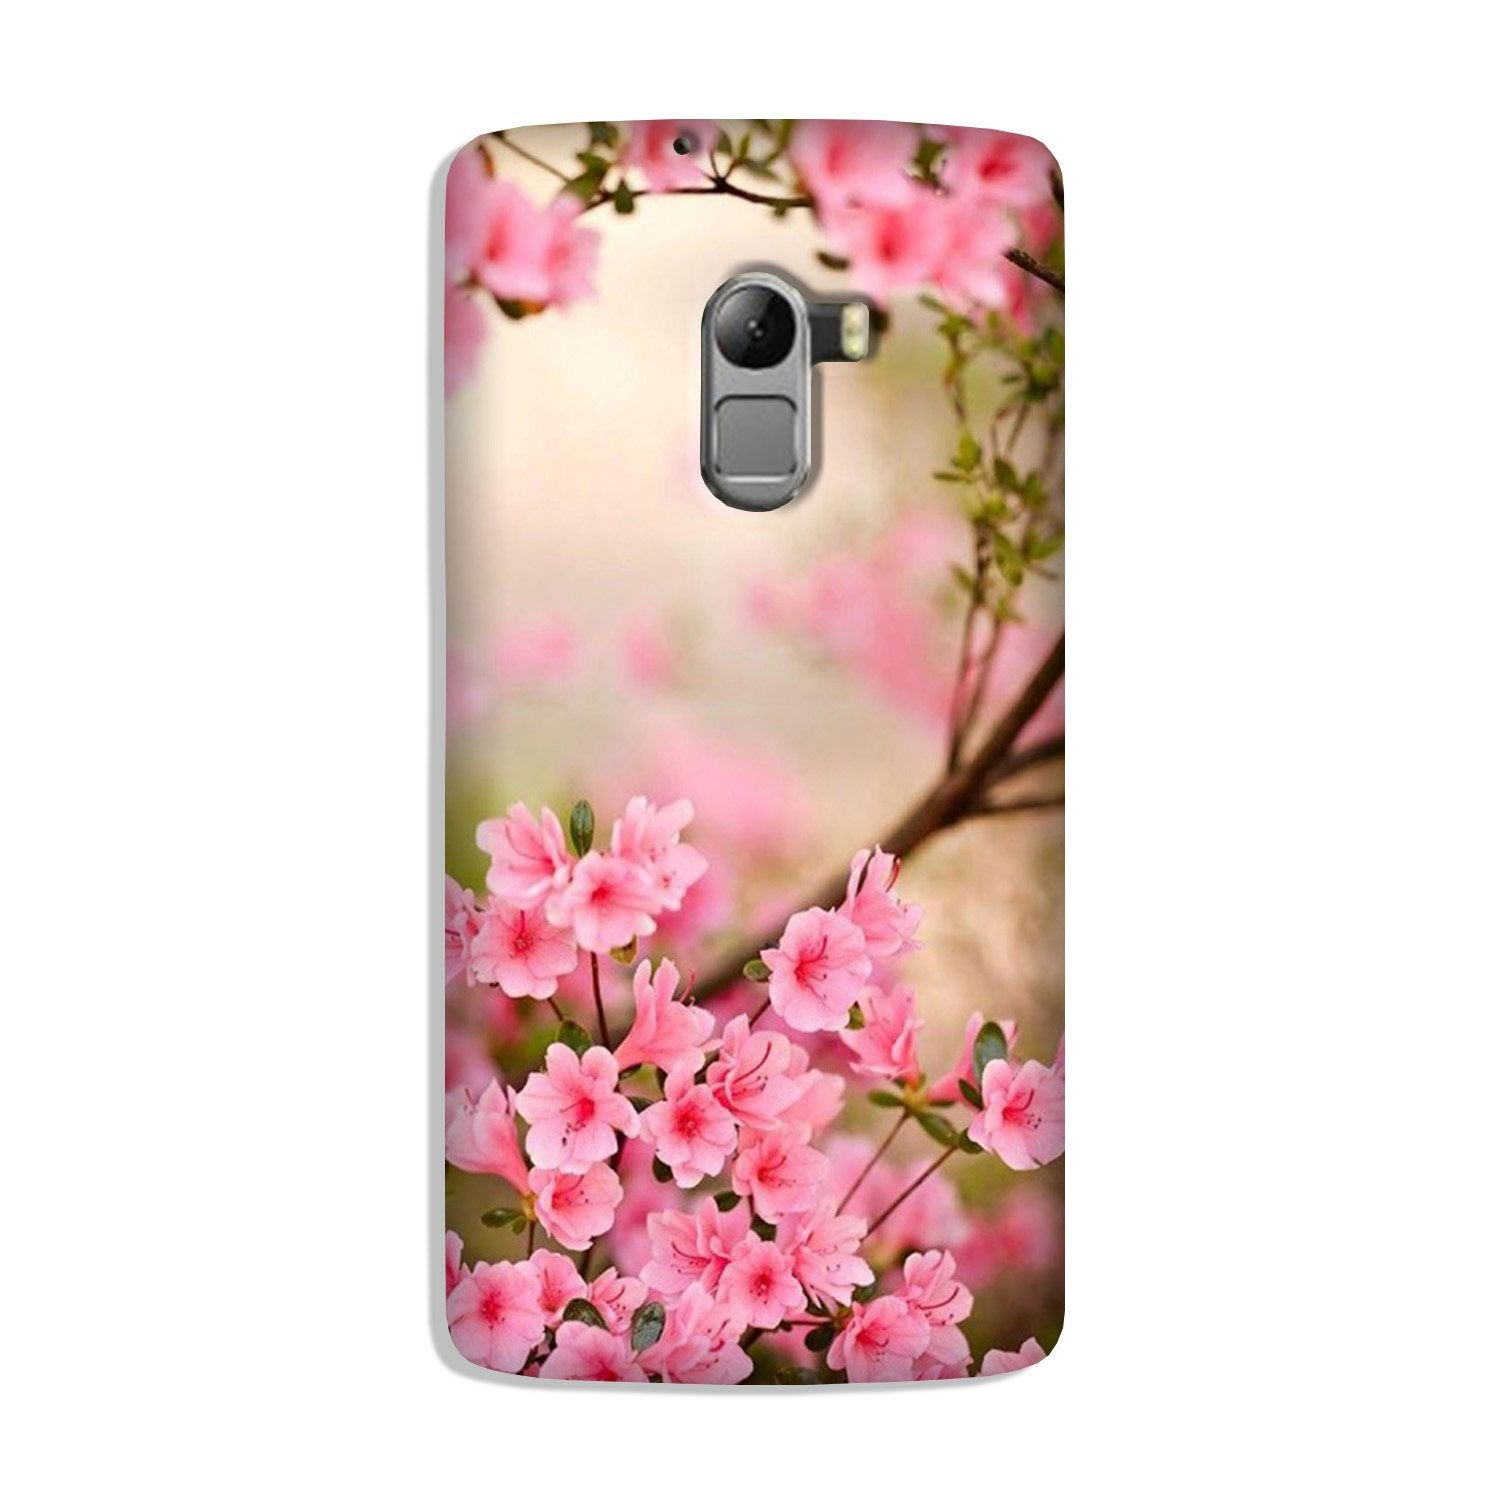 Pink flowers Case for Lenovo K4 Note